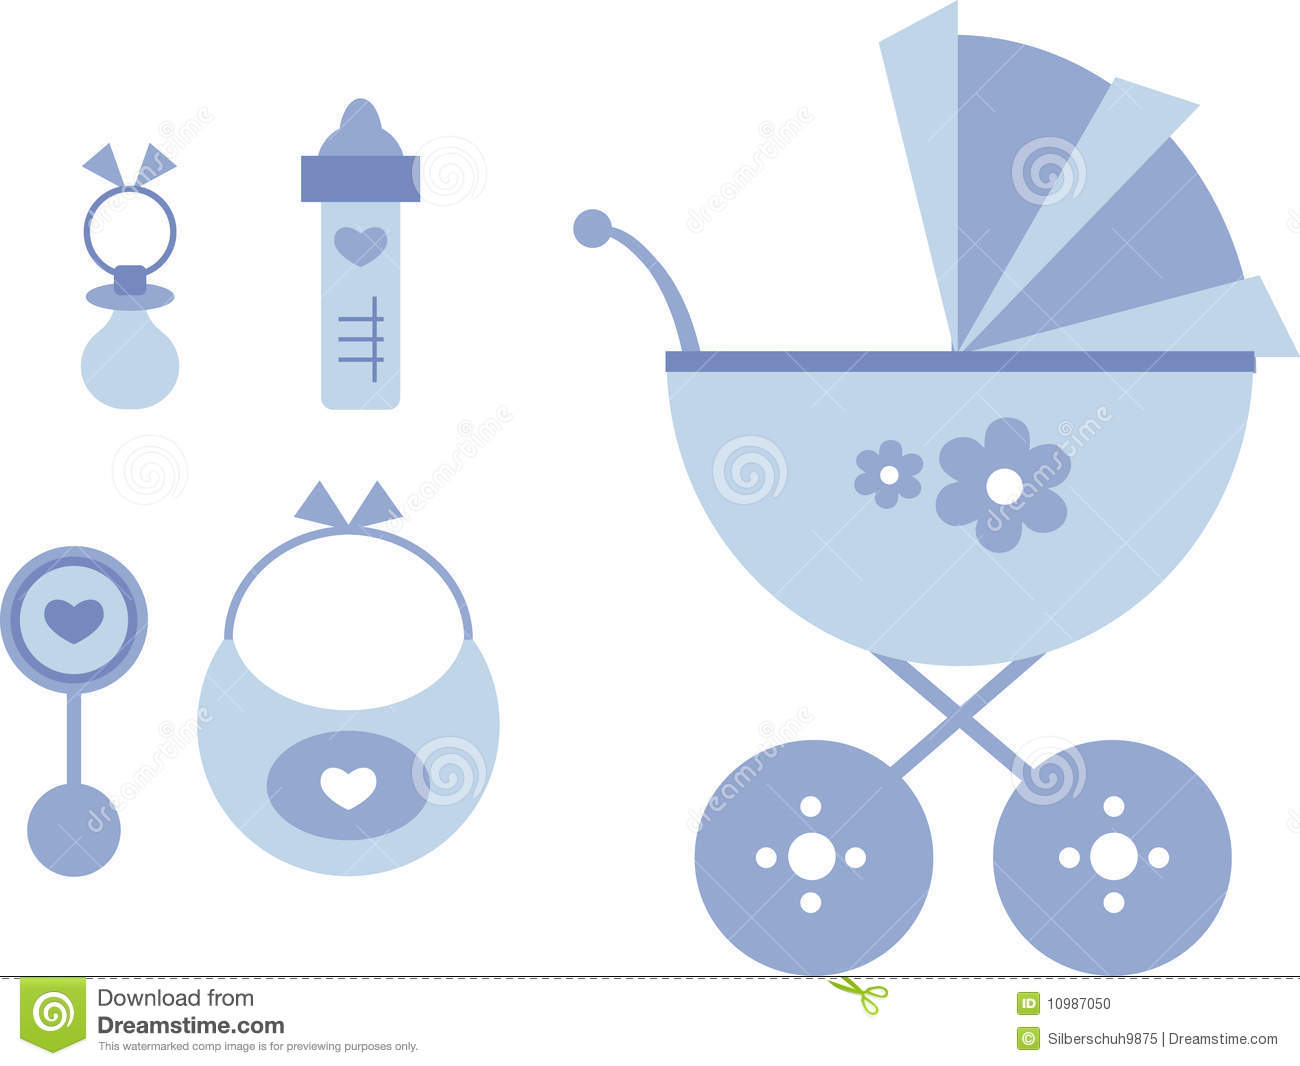 ... of baby items including: baby stroller, bottle, bib, rattle, pacifier